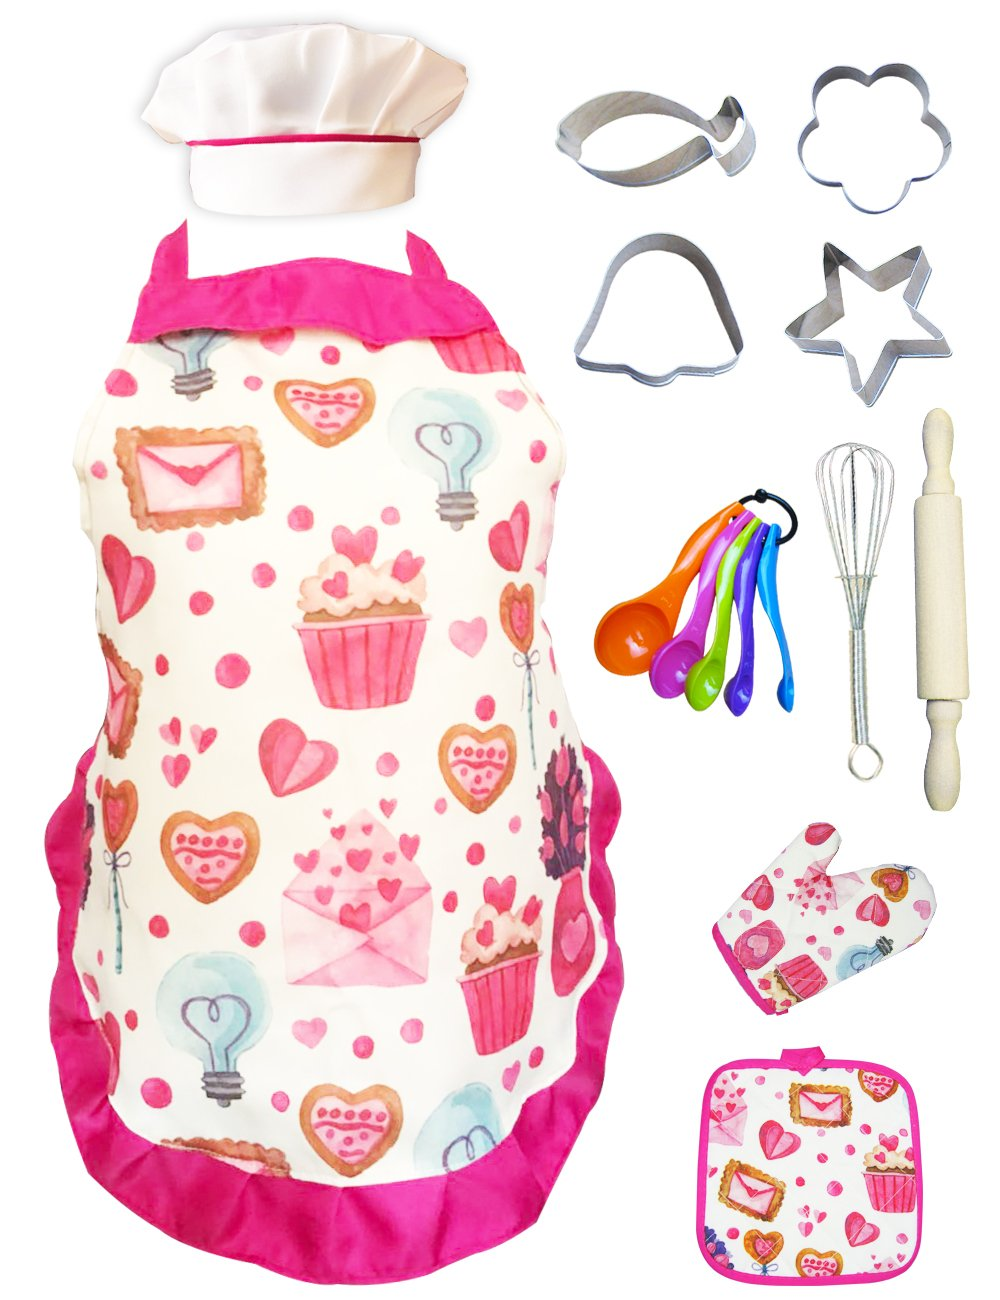 Cupcake Chef Set for Kids Cooking, Play Set with Apron for Girls,Chef Hat, and Other Accessories for Toddler,Career Role Play, Great Gift for Children Pretend Play, Size Medium 5-12 11 Pcs (Chef Set) NLooking